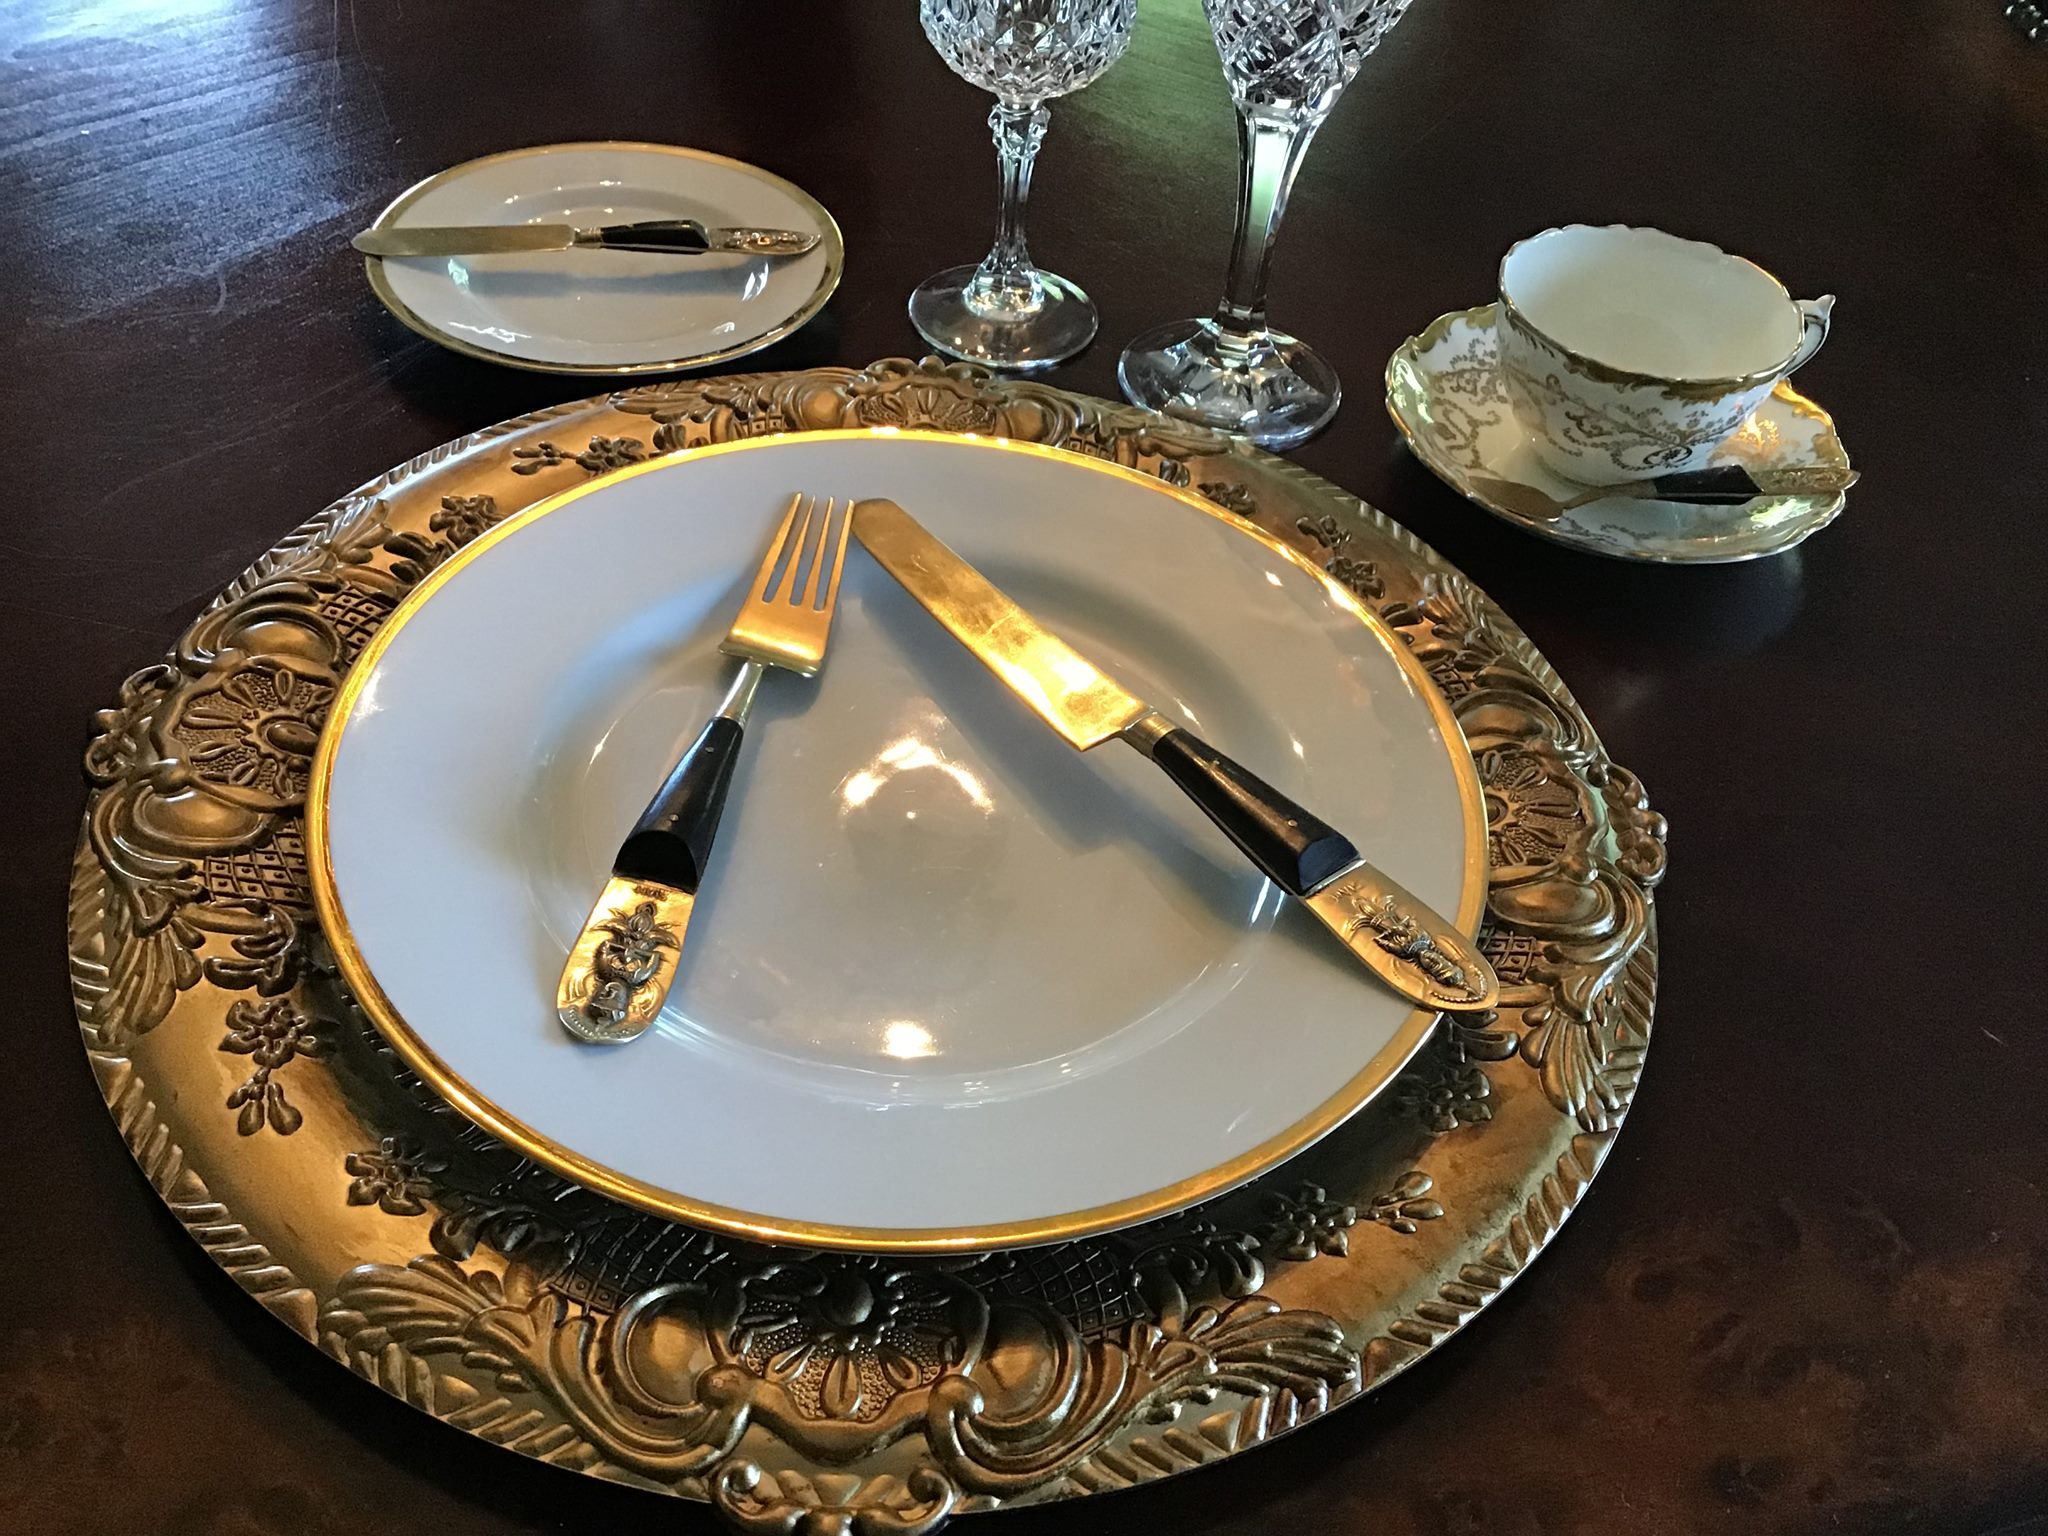 """Mariby Corpening's DID YOU KNOW: Table Etiquette No. 1 - By placement of utensils - """"I'M STILL EATING!"""" This, so I won't keep bugging you with, """"Are you finished!"""""""